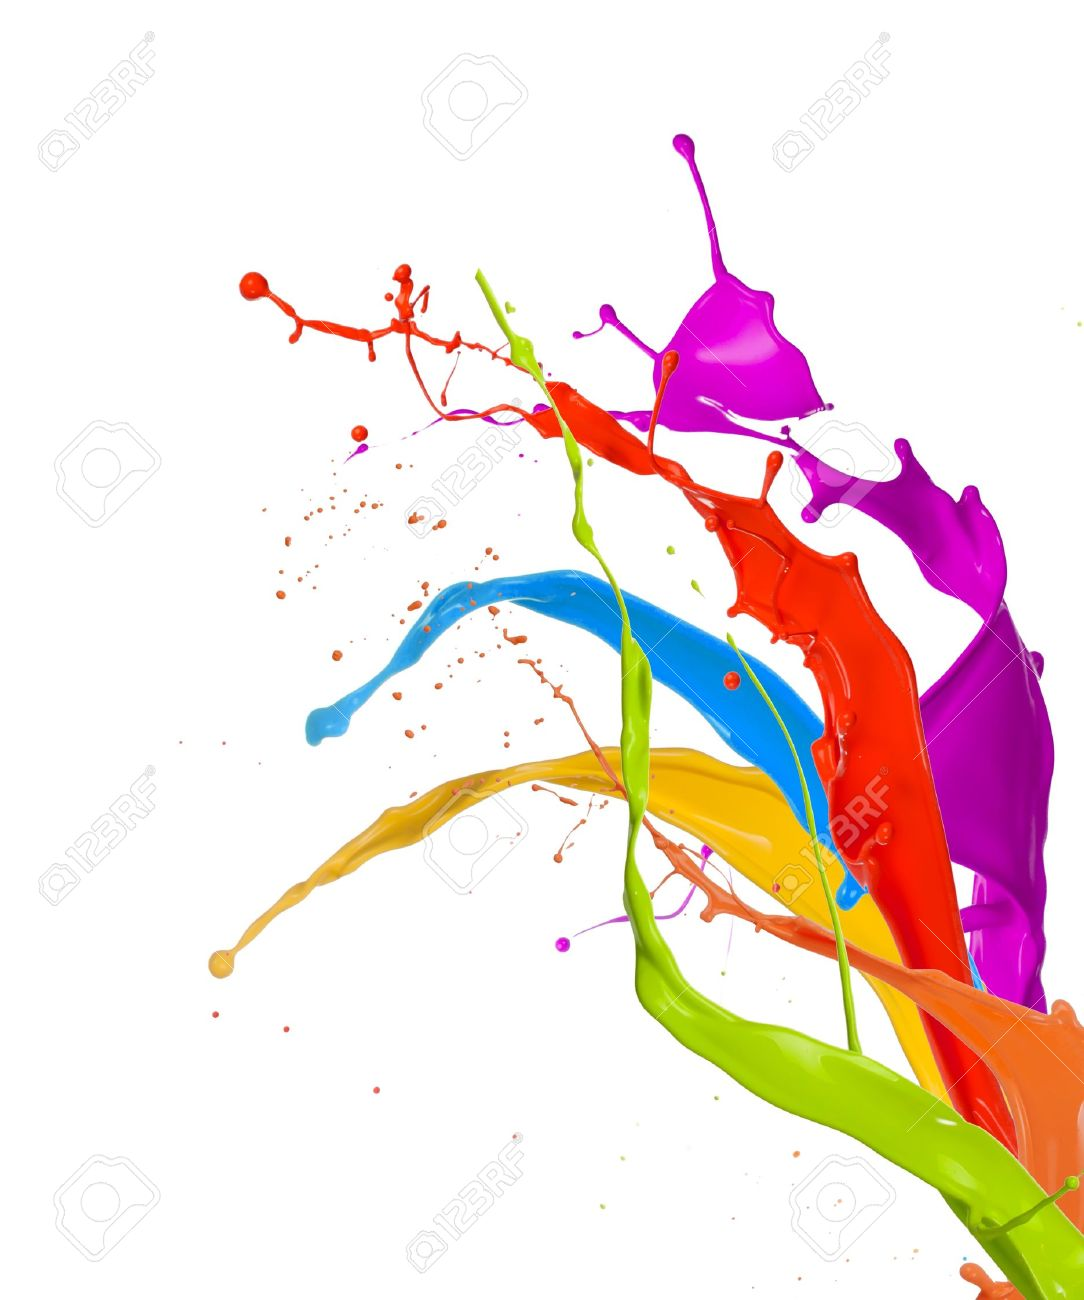 Colored paint splashes bouquet isolated on white background Stock Photo - 15515886